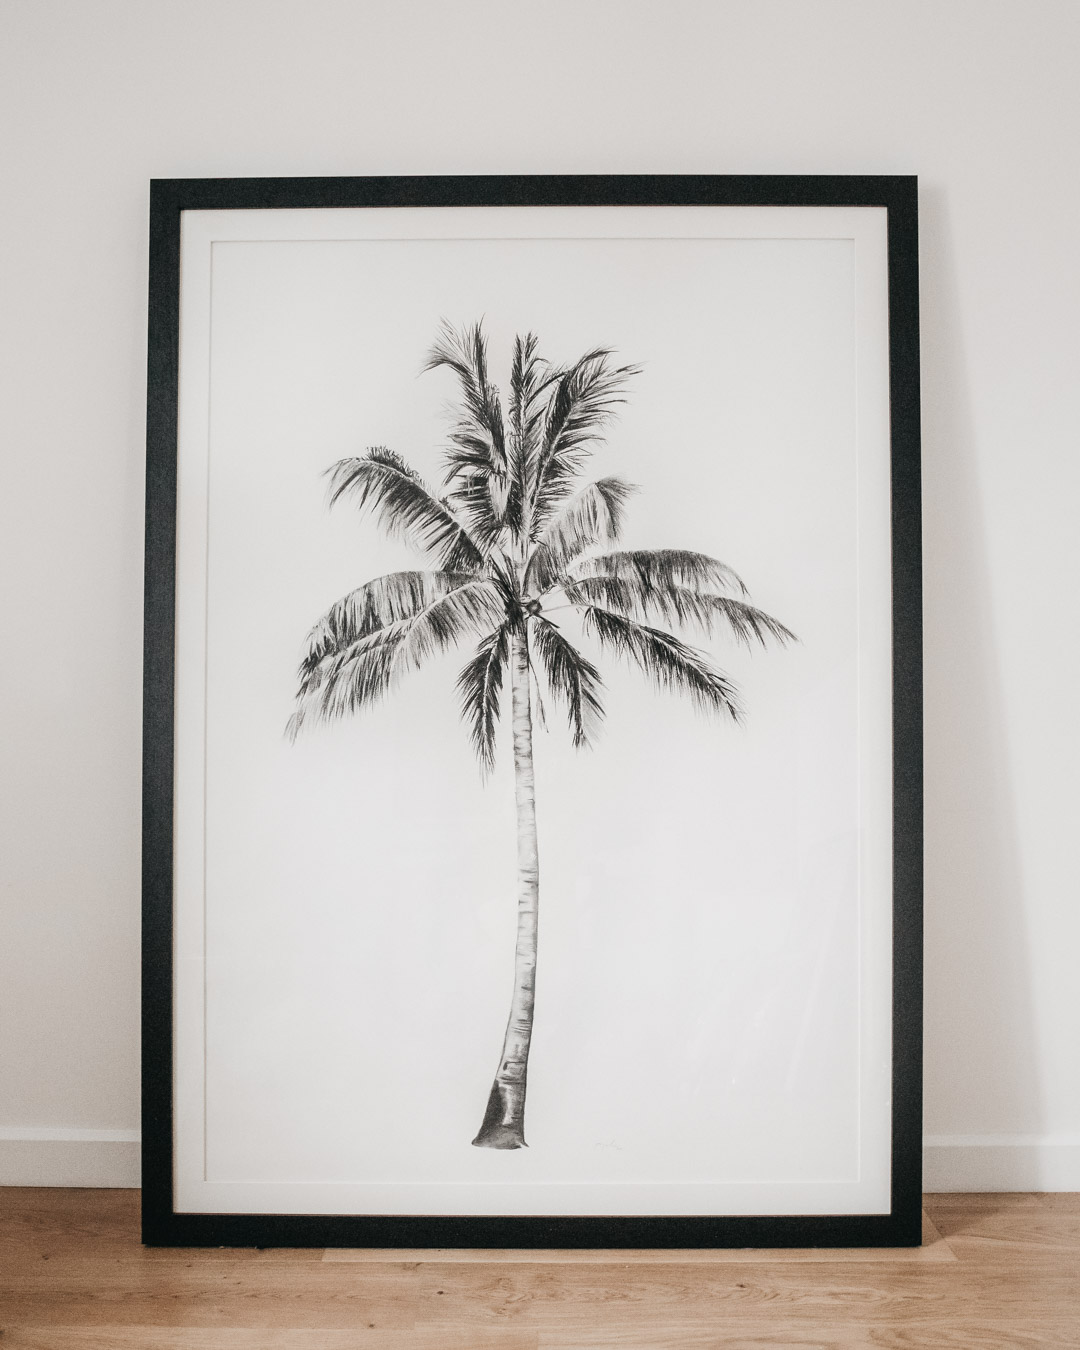 Size adds impact but also needs space to breathe like this stunning Charcoal Palm Tree by Jo Painter